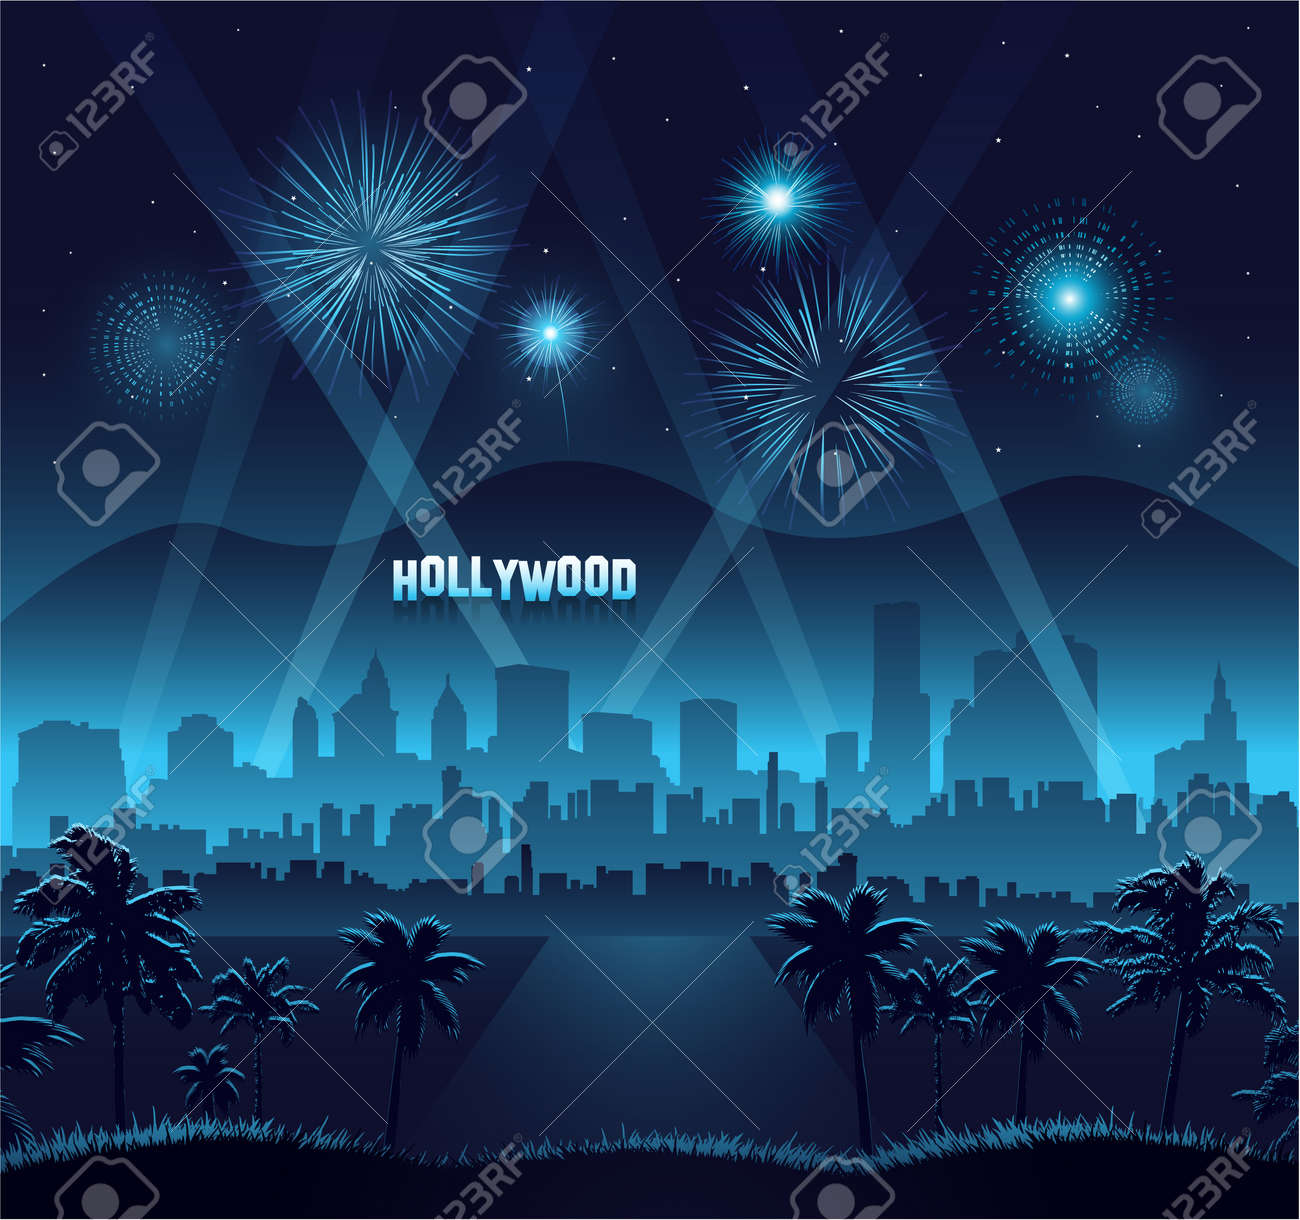 Hollywood movie premiere background celebration Stock Vector - 17702105